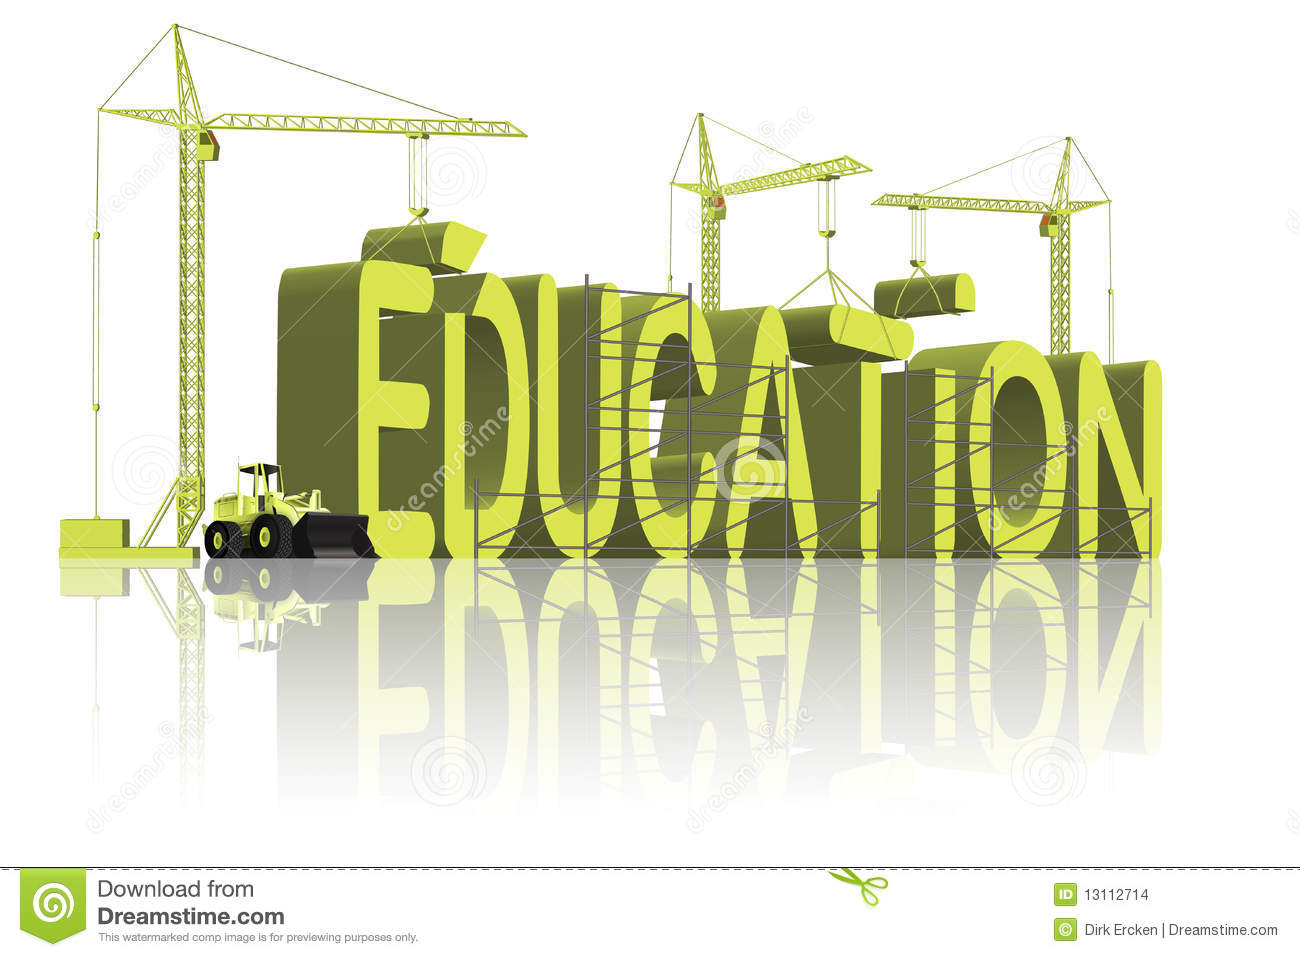 Building education learn knowledge go to school